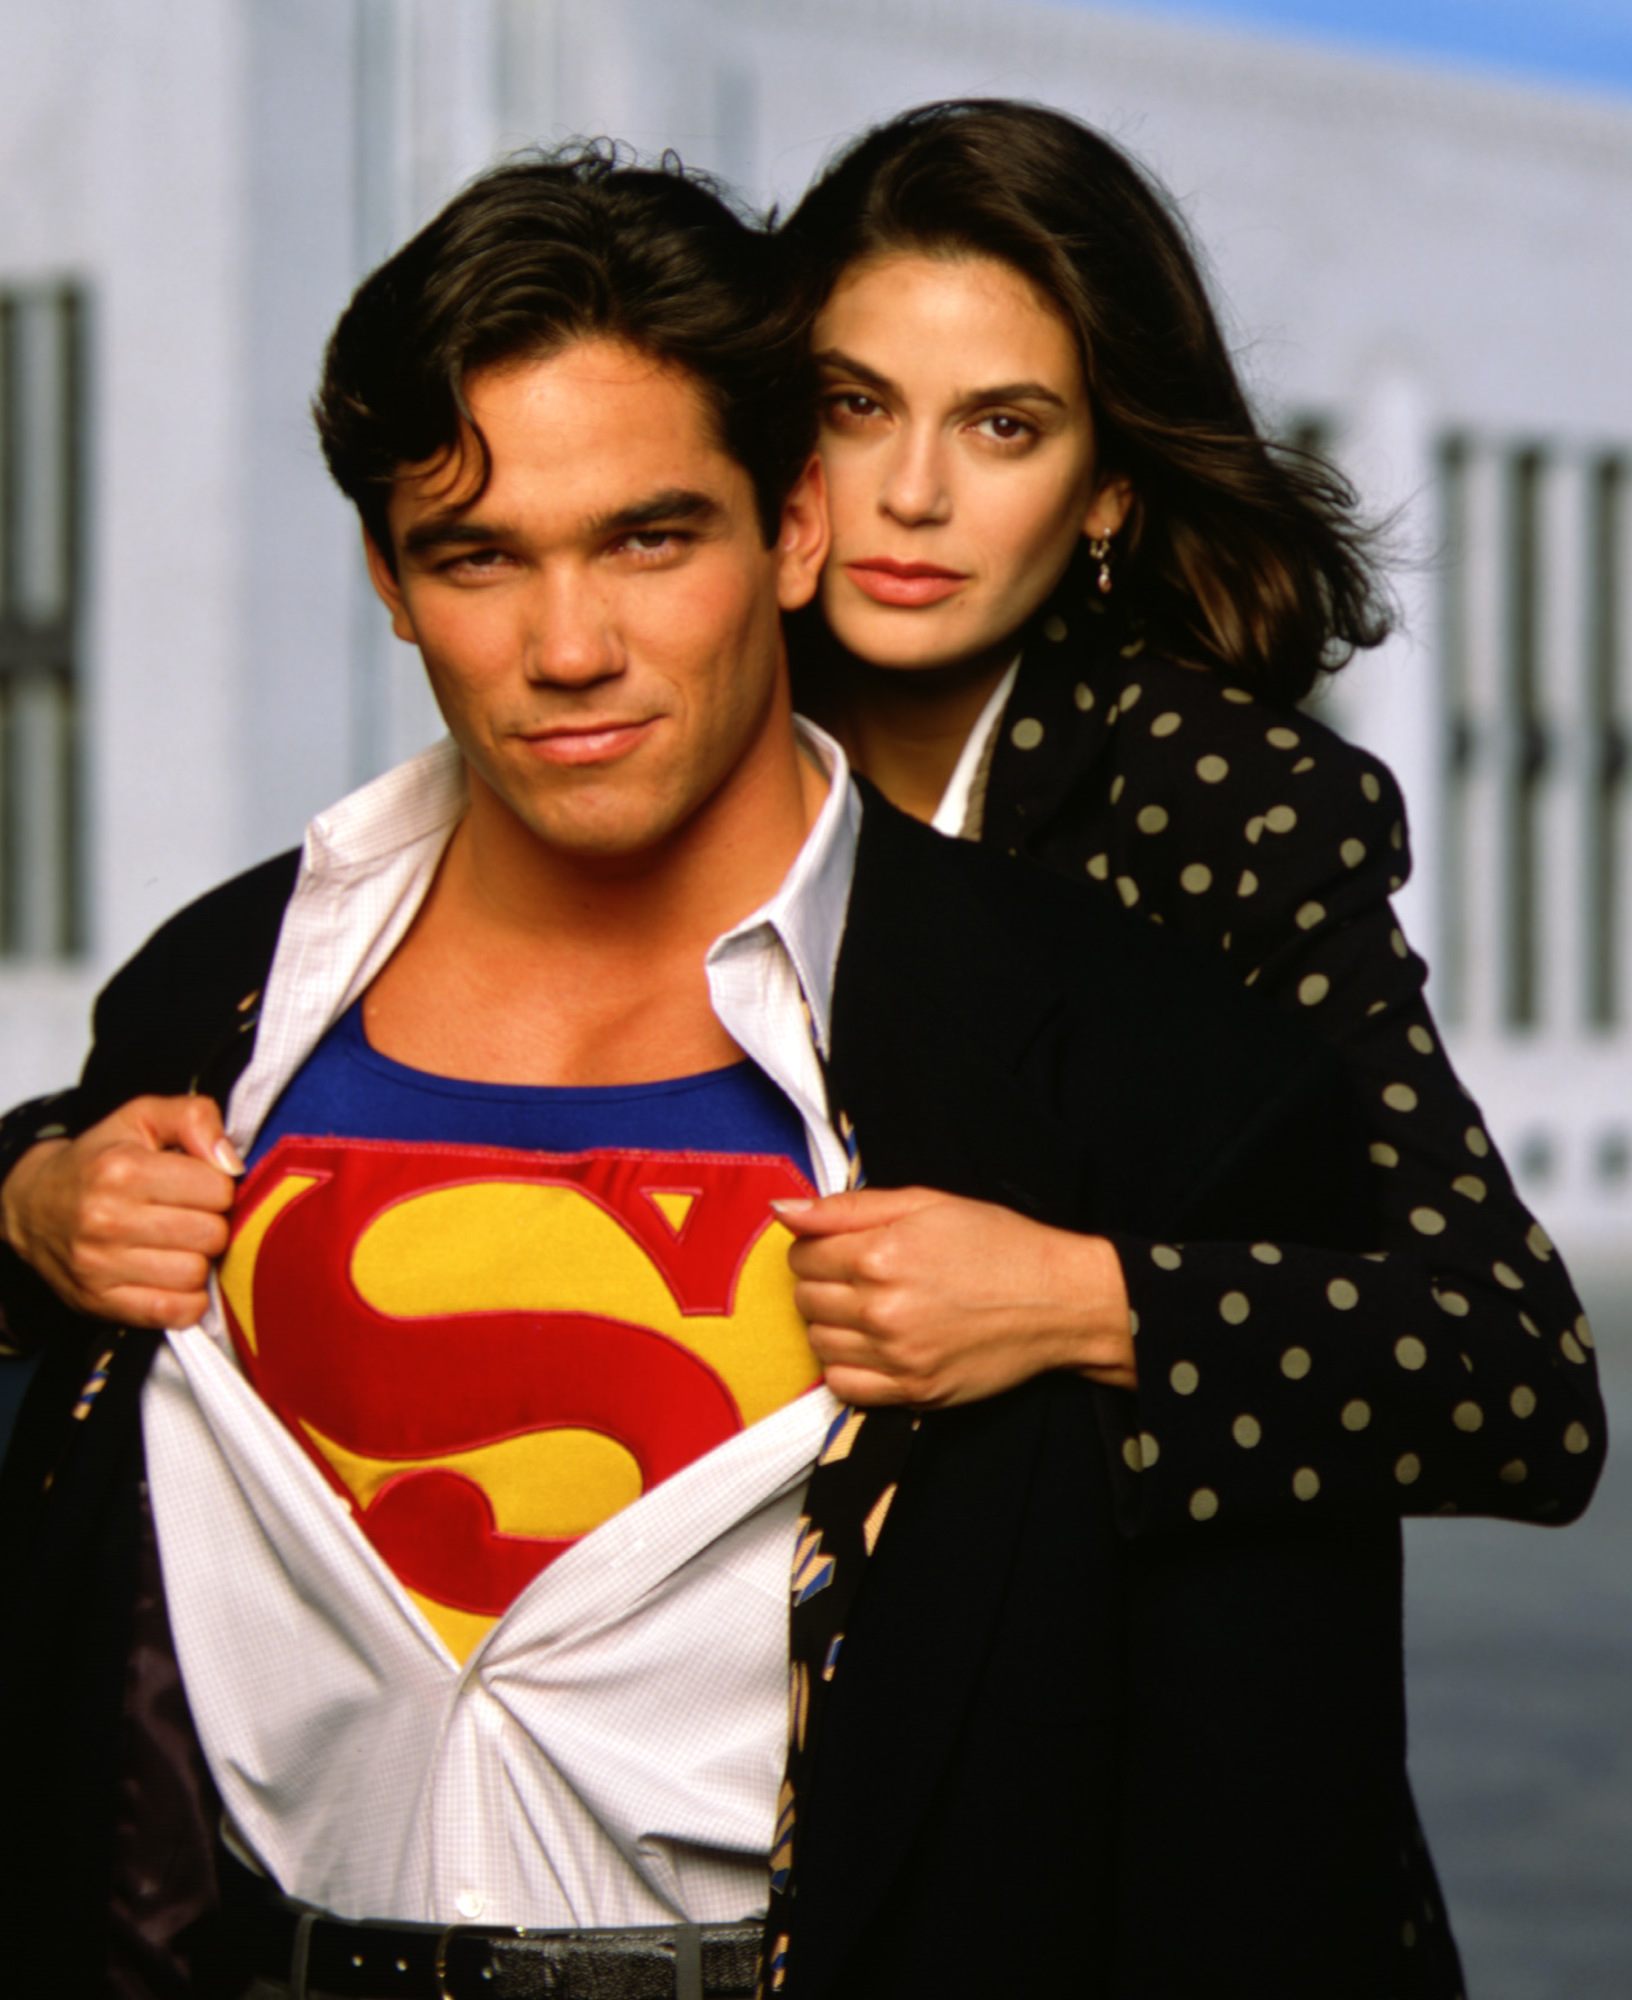 Lois & Clark: The New Adventures of Superman (1993-1997)